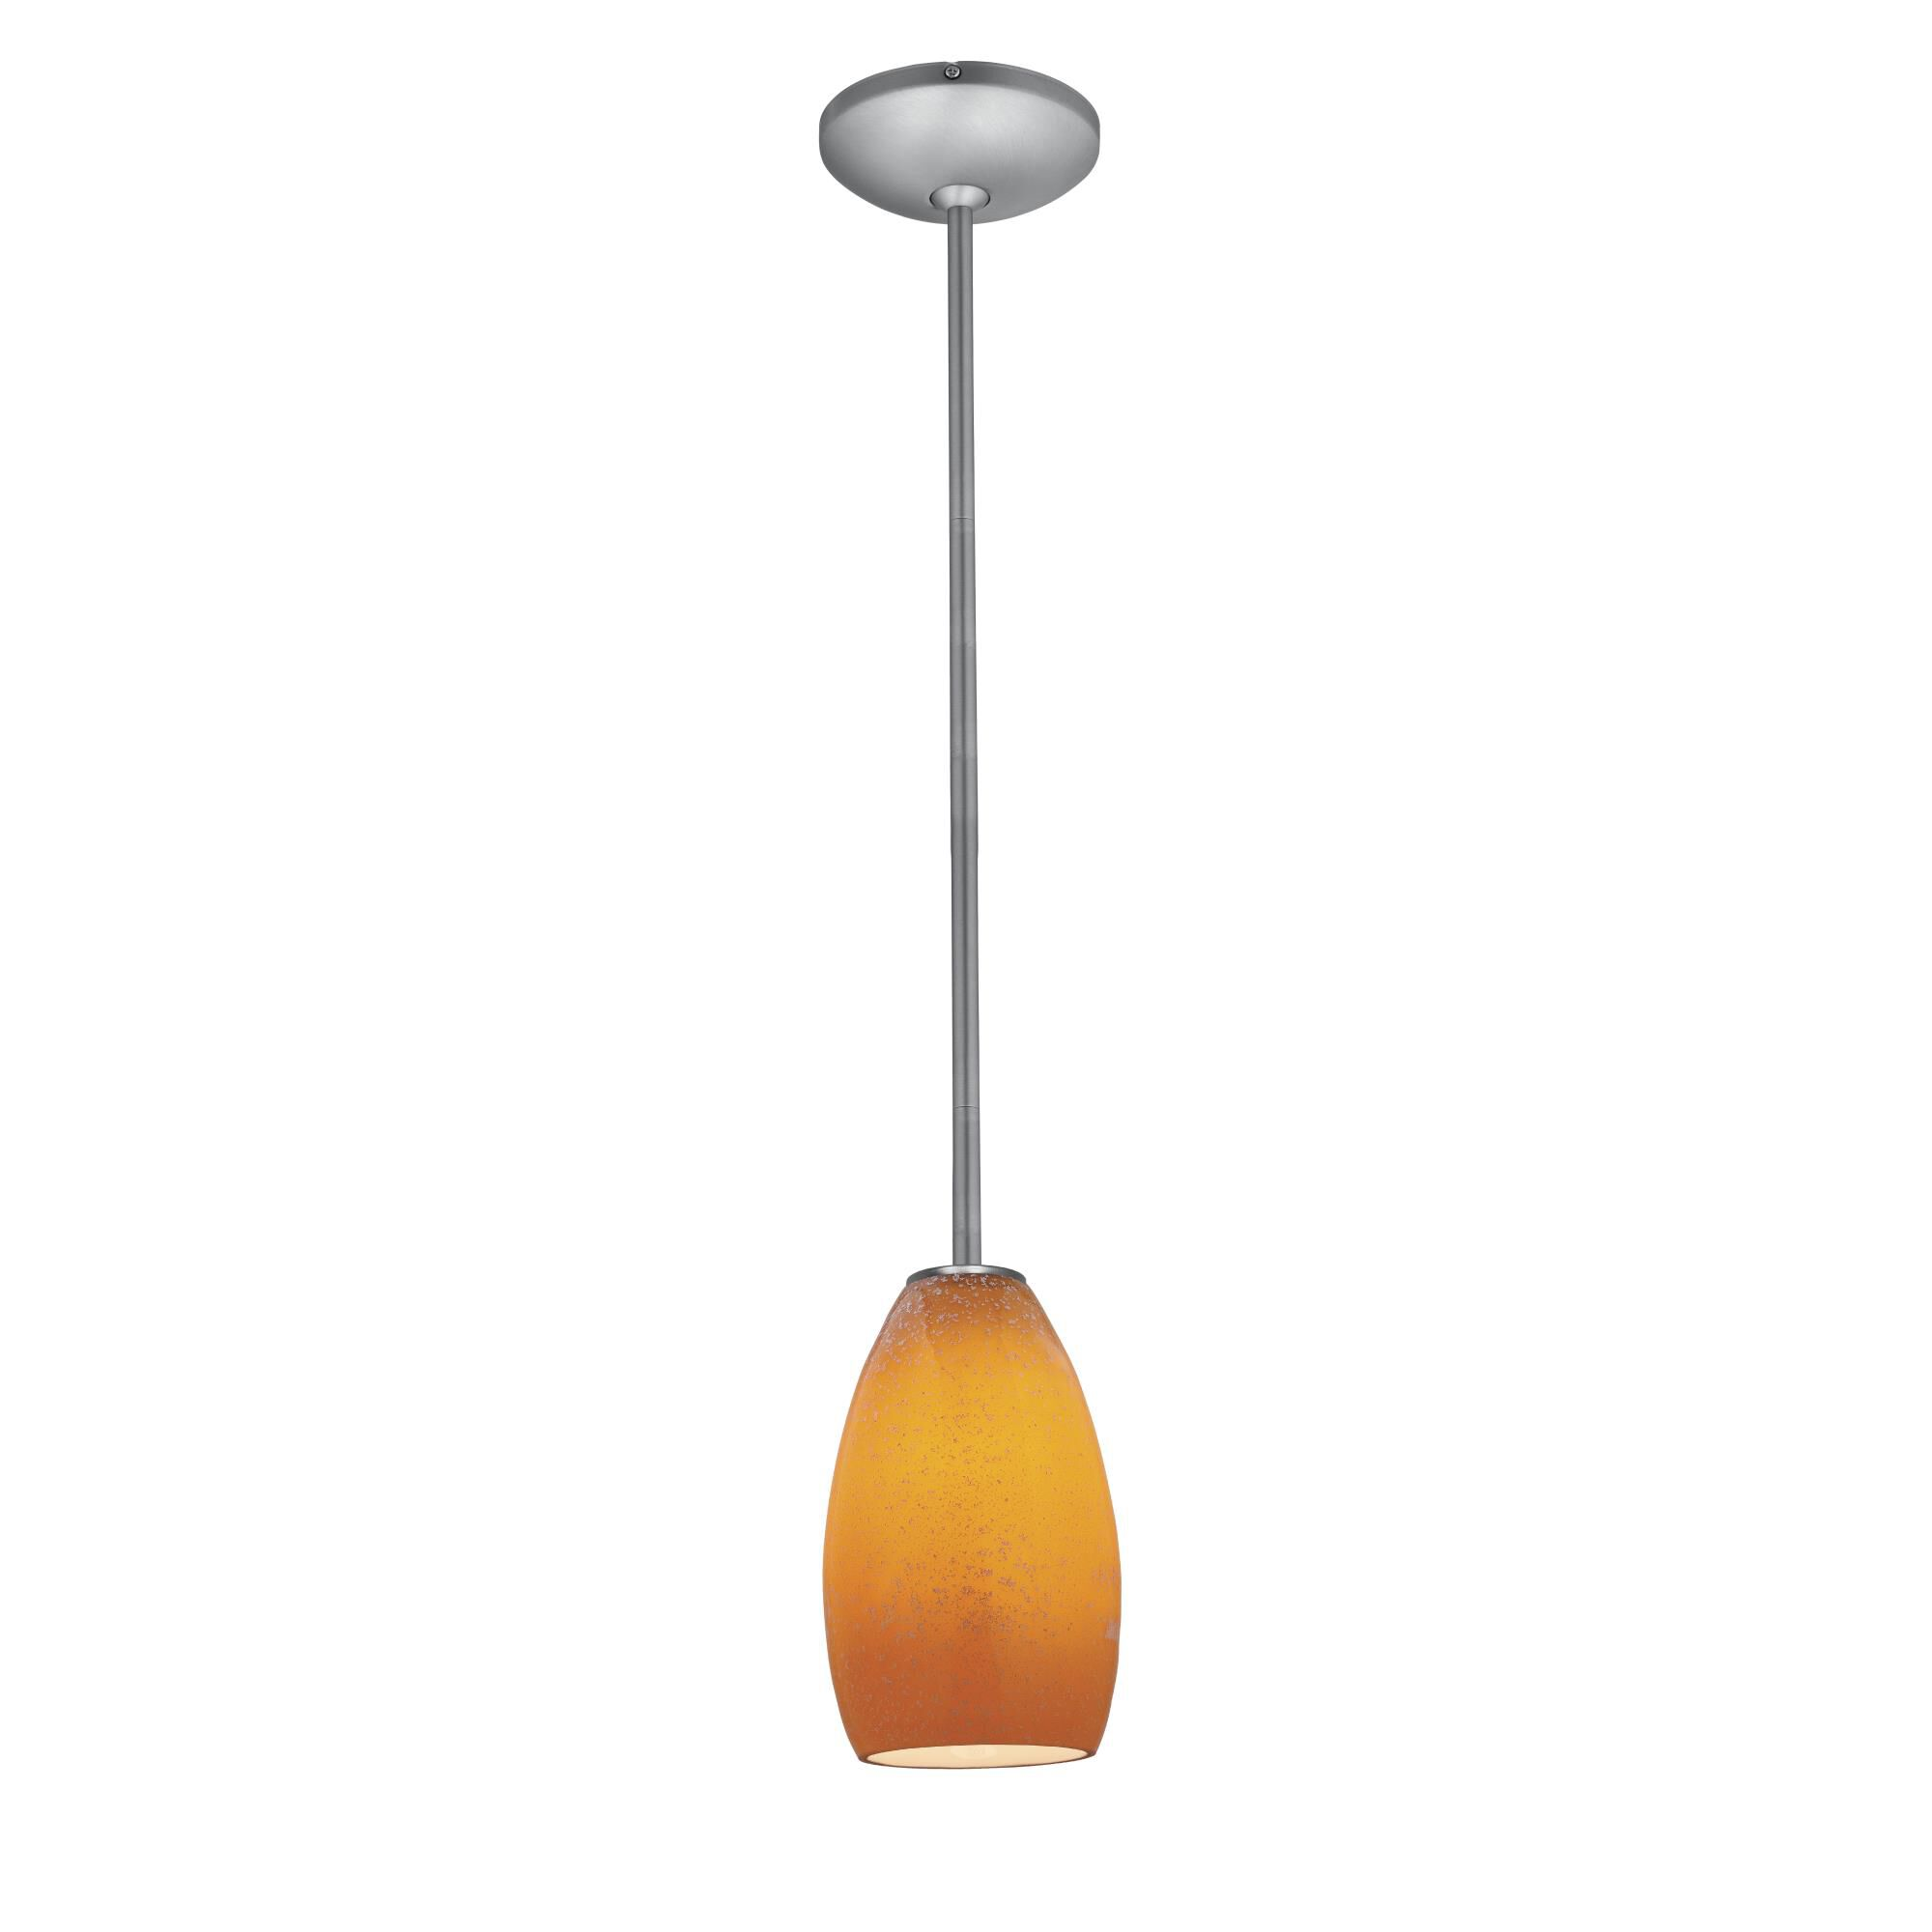 Access Lighting Champagne LED Mini Pendant Champagne 28012 3R BSMYA Modern Contemporary